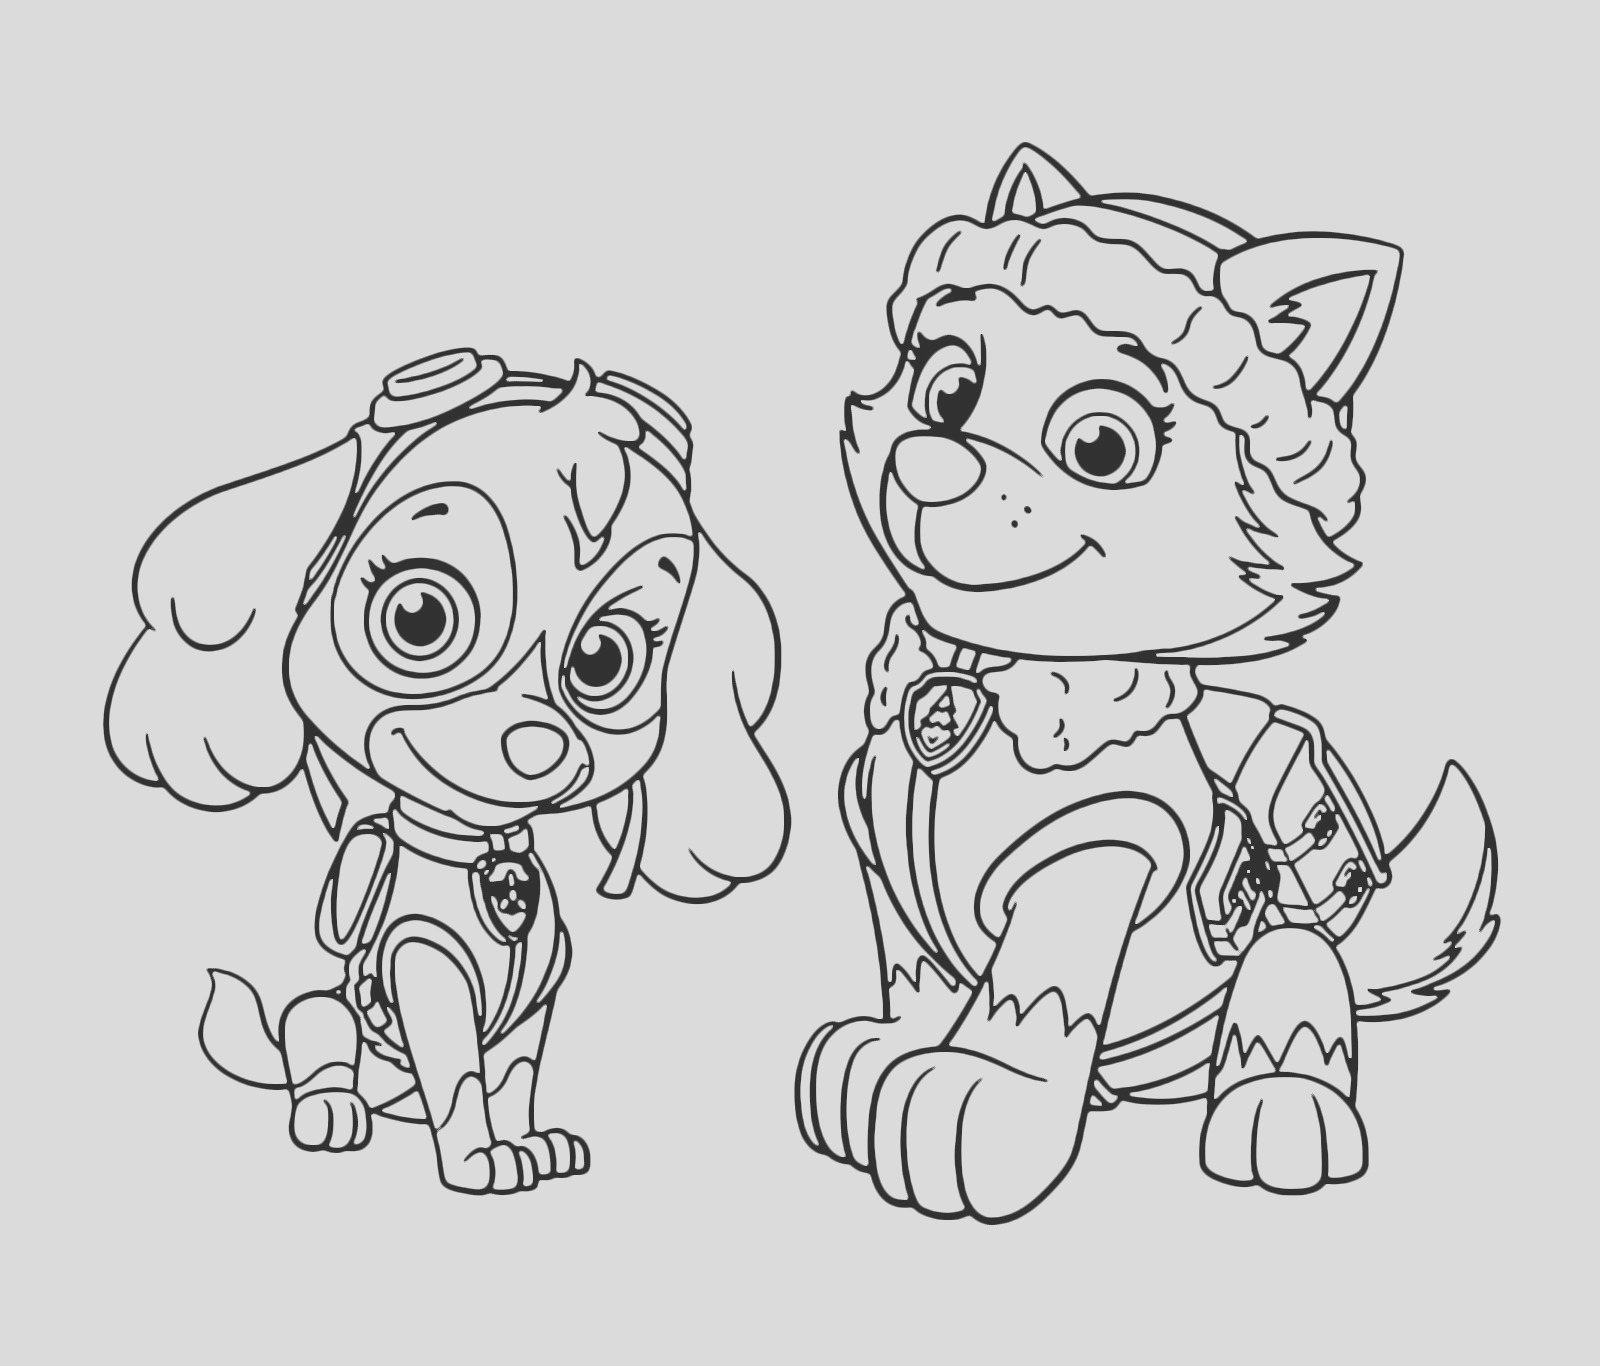 paw patrol skye and everest coloring pages